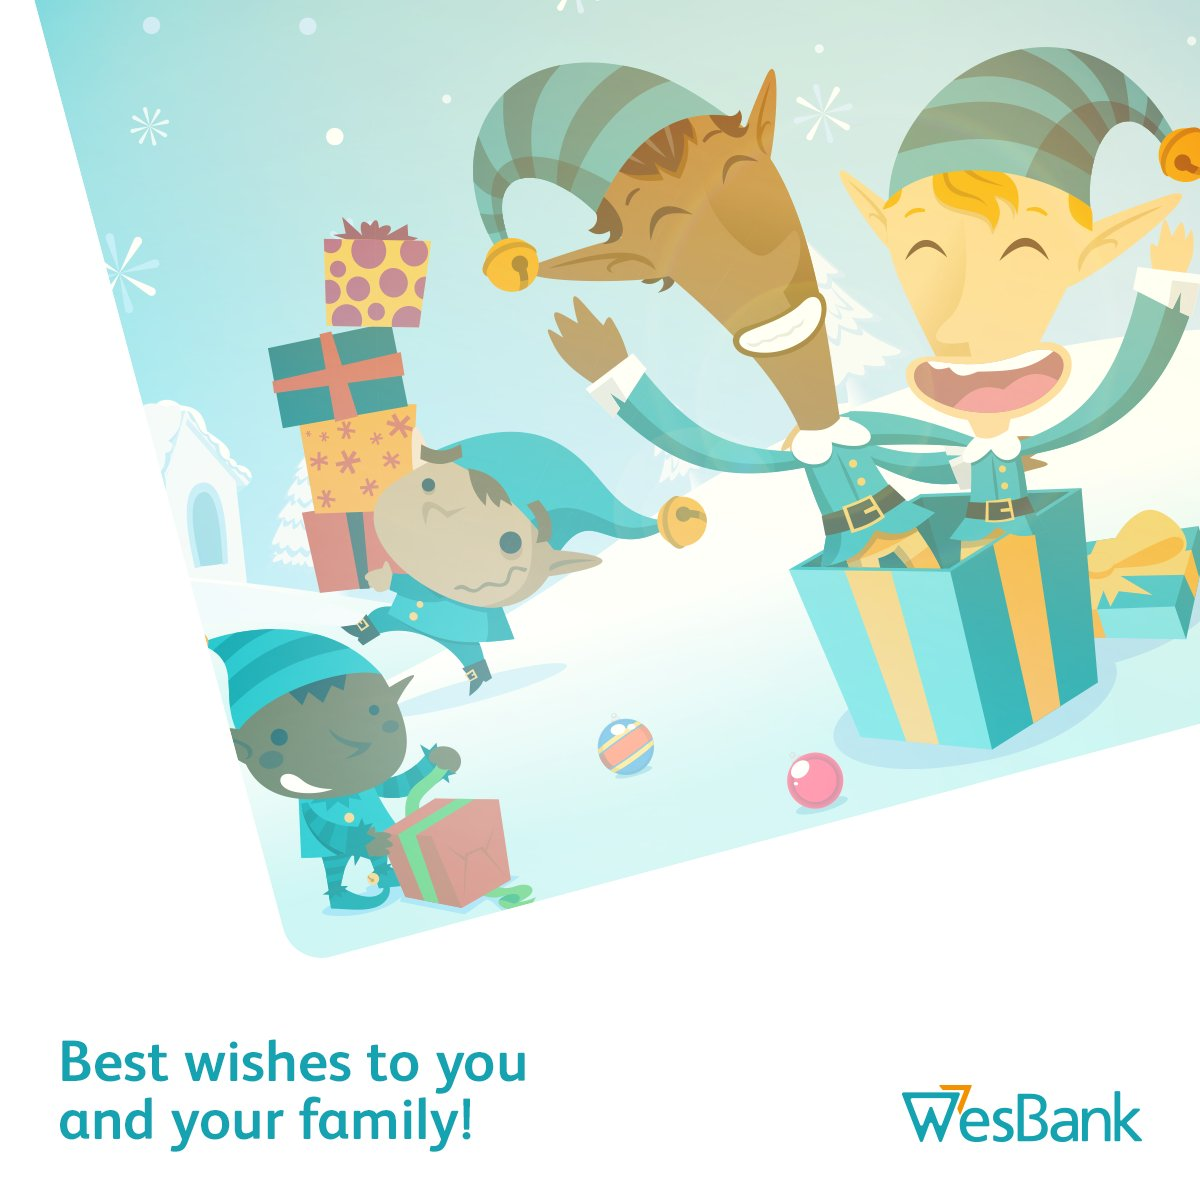 Wesbank On Twitter Seasons Greetings Enjoy This Special Time